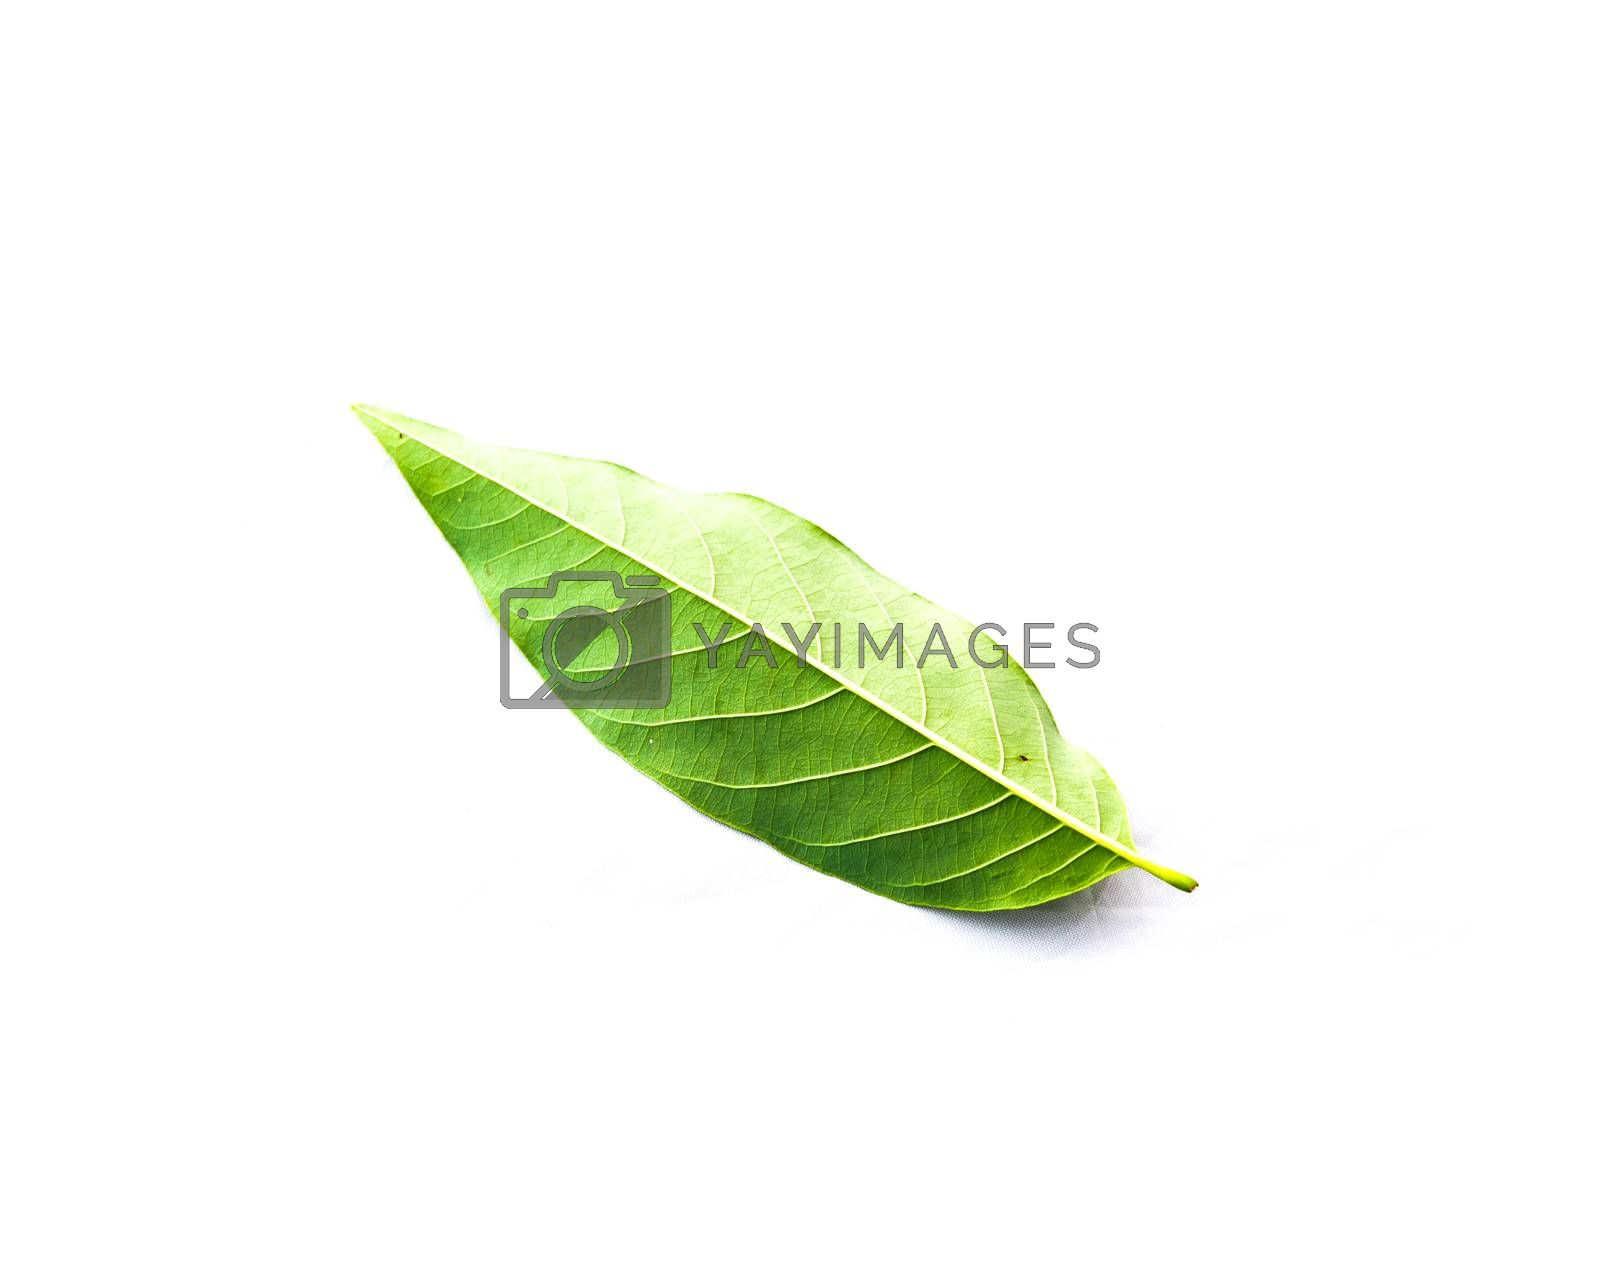 Studio shot single custard apple or sugar-apple, sweetsop leaf isolated on white background. It is the fruit of Annona squamosa, a native of the tropical Americas and West Indies